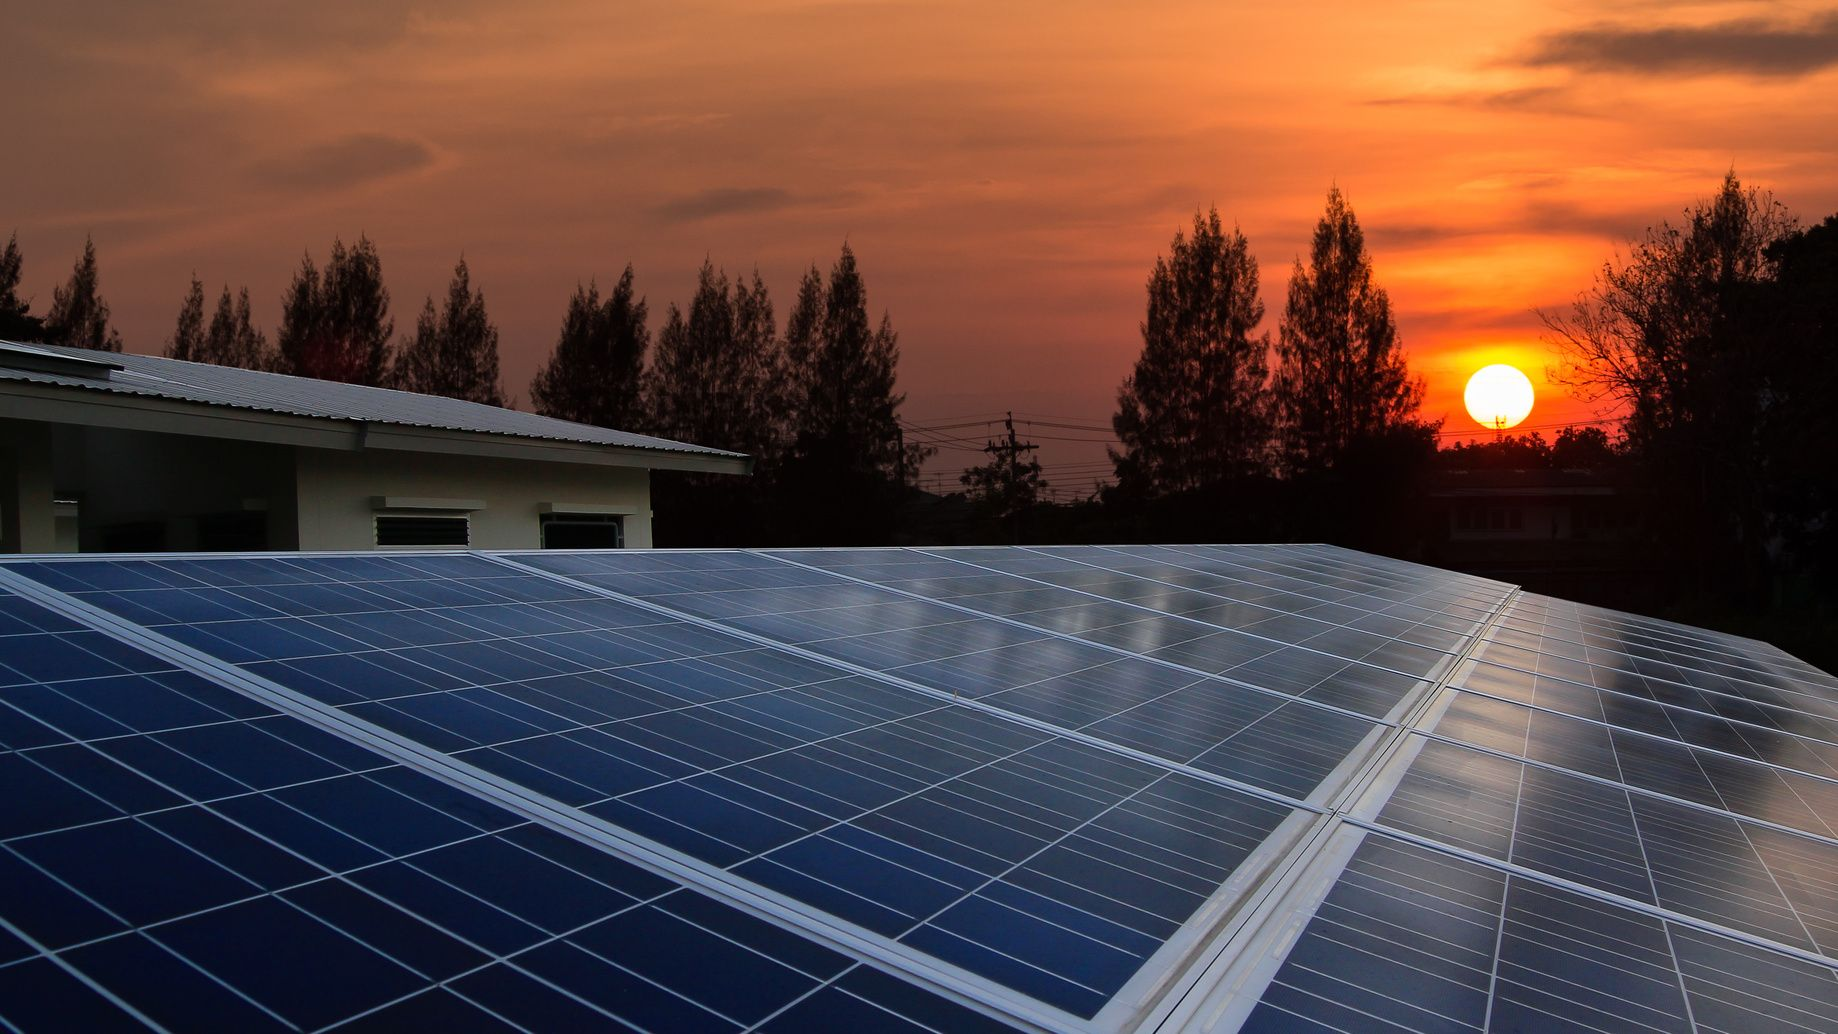 California S Rebate Bill May Have Dimmed But The Future Of Energy Storage Is Bright Paneles Solares Energia Panel